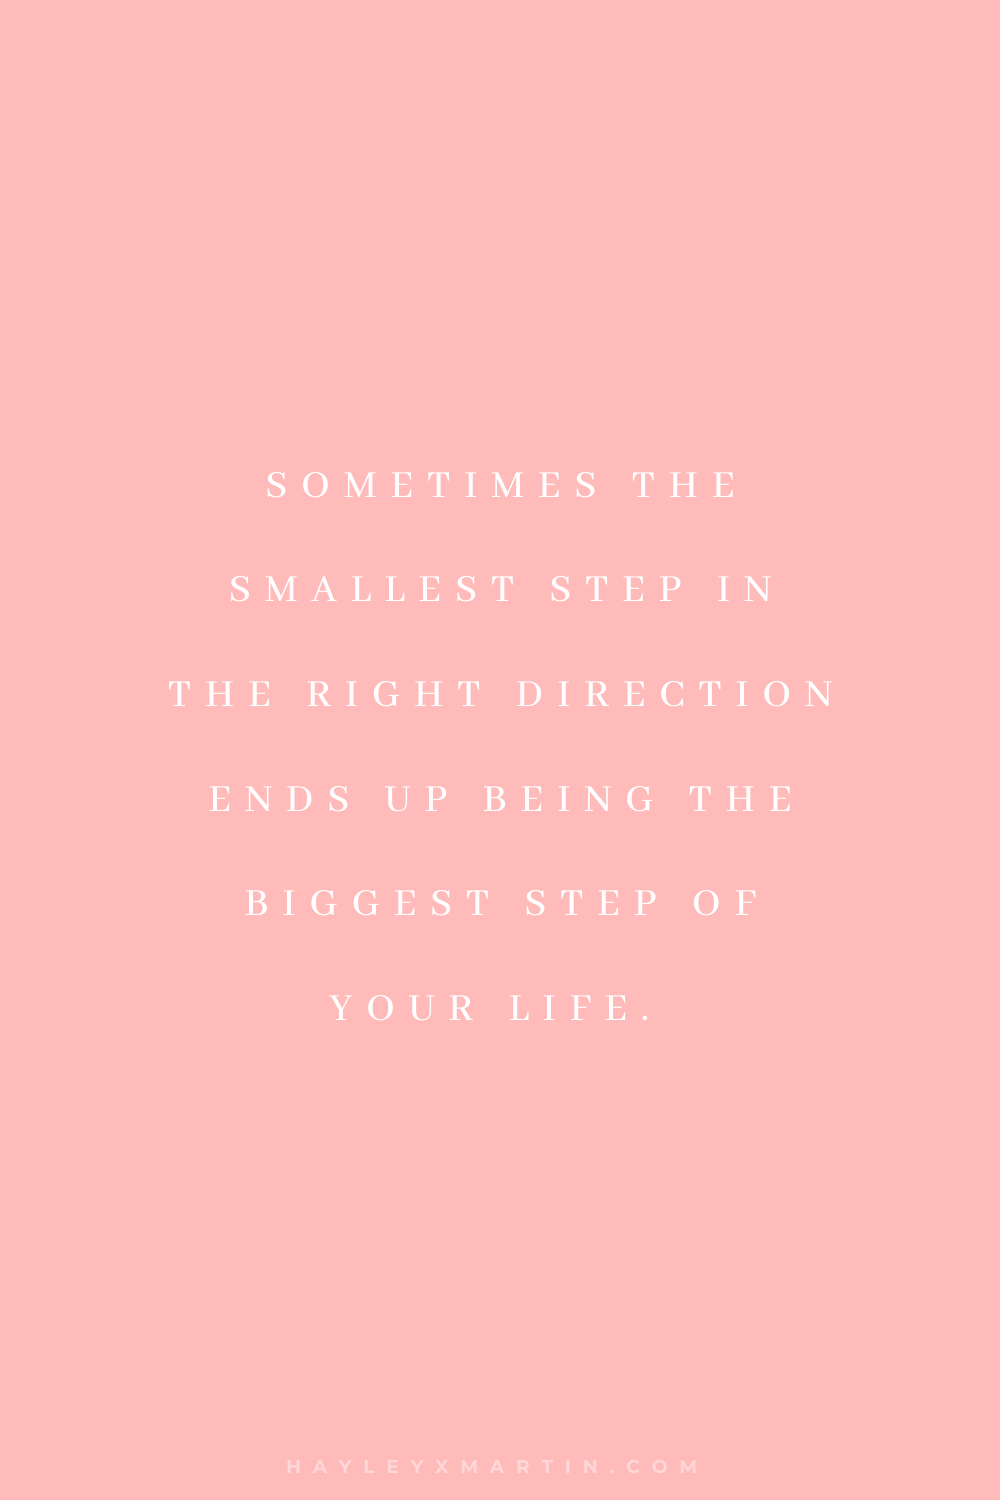 SOMETIMES THE SMALLEST STEP IN THE RIGHT DIRECTION ENDS UP BEING THE BIGGEST STEP OF YOUR LIFE | HAYLEYXMARTIN